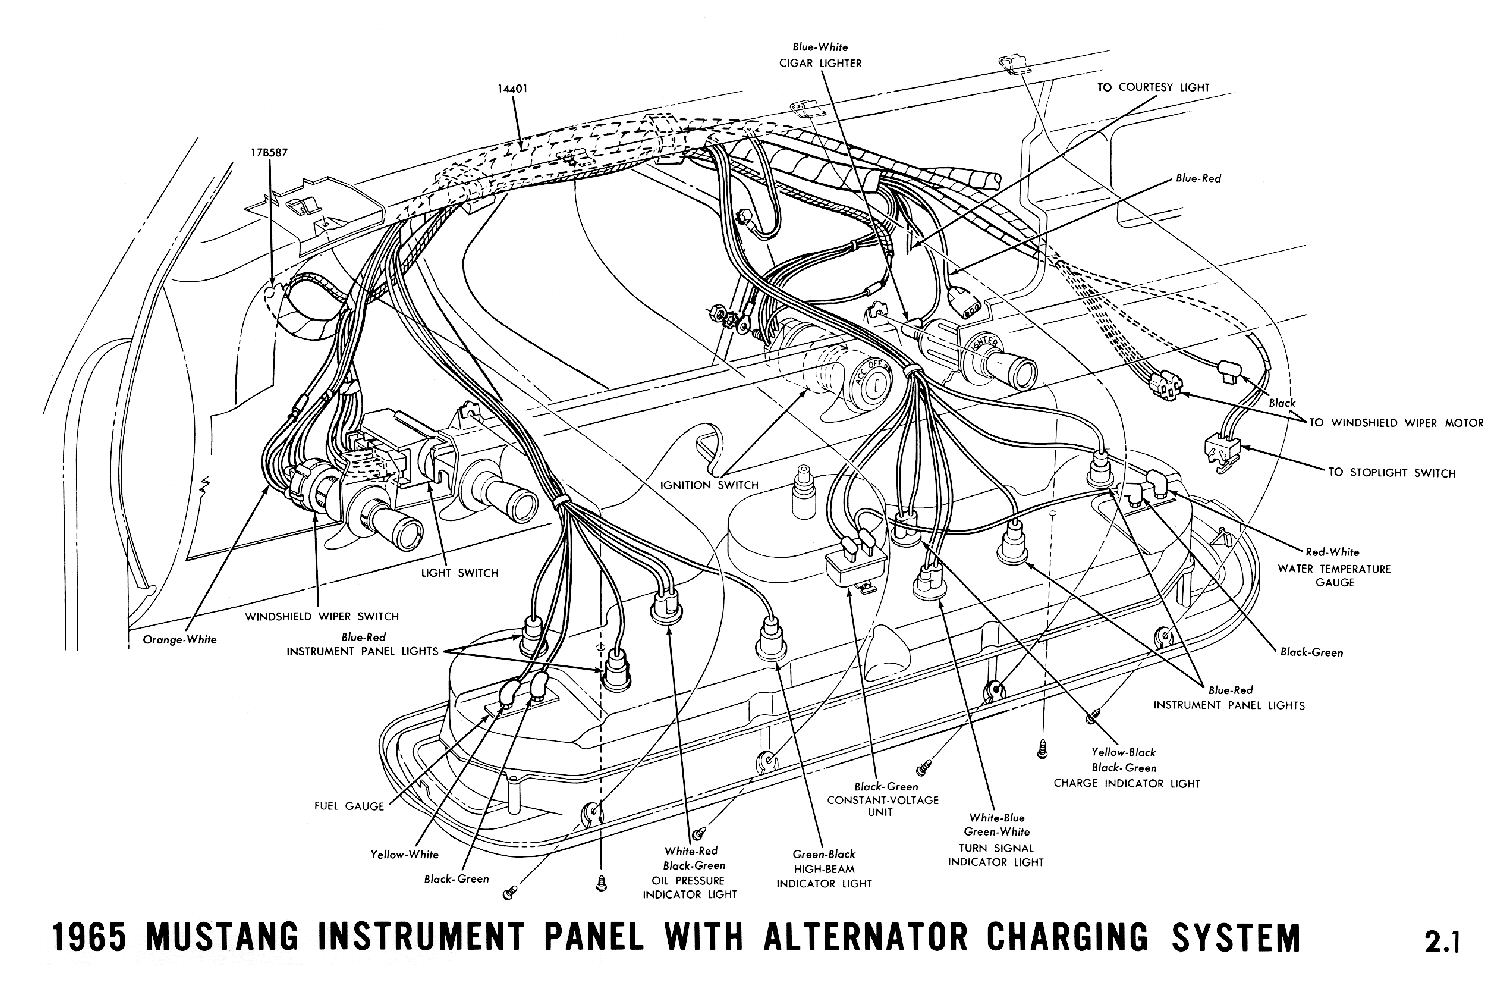 1965a 1965 mustang wiring diagrams average joe restoration mustang wiring harness diagram at aneh.co